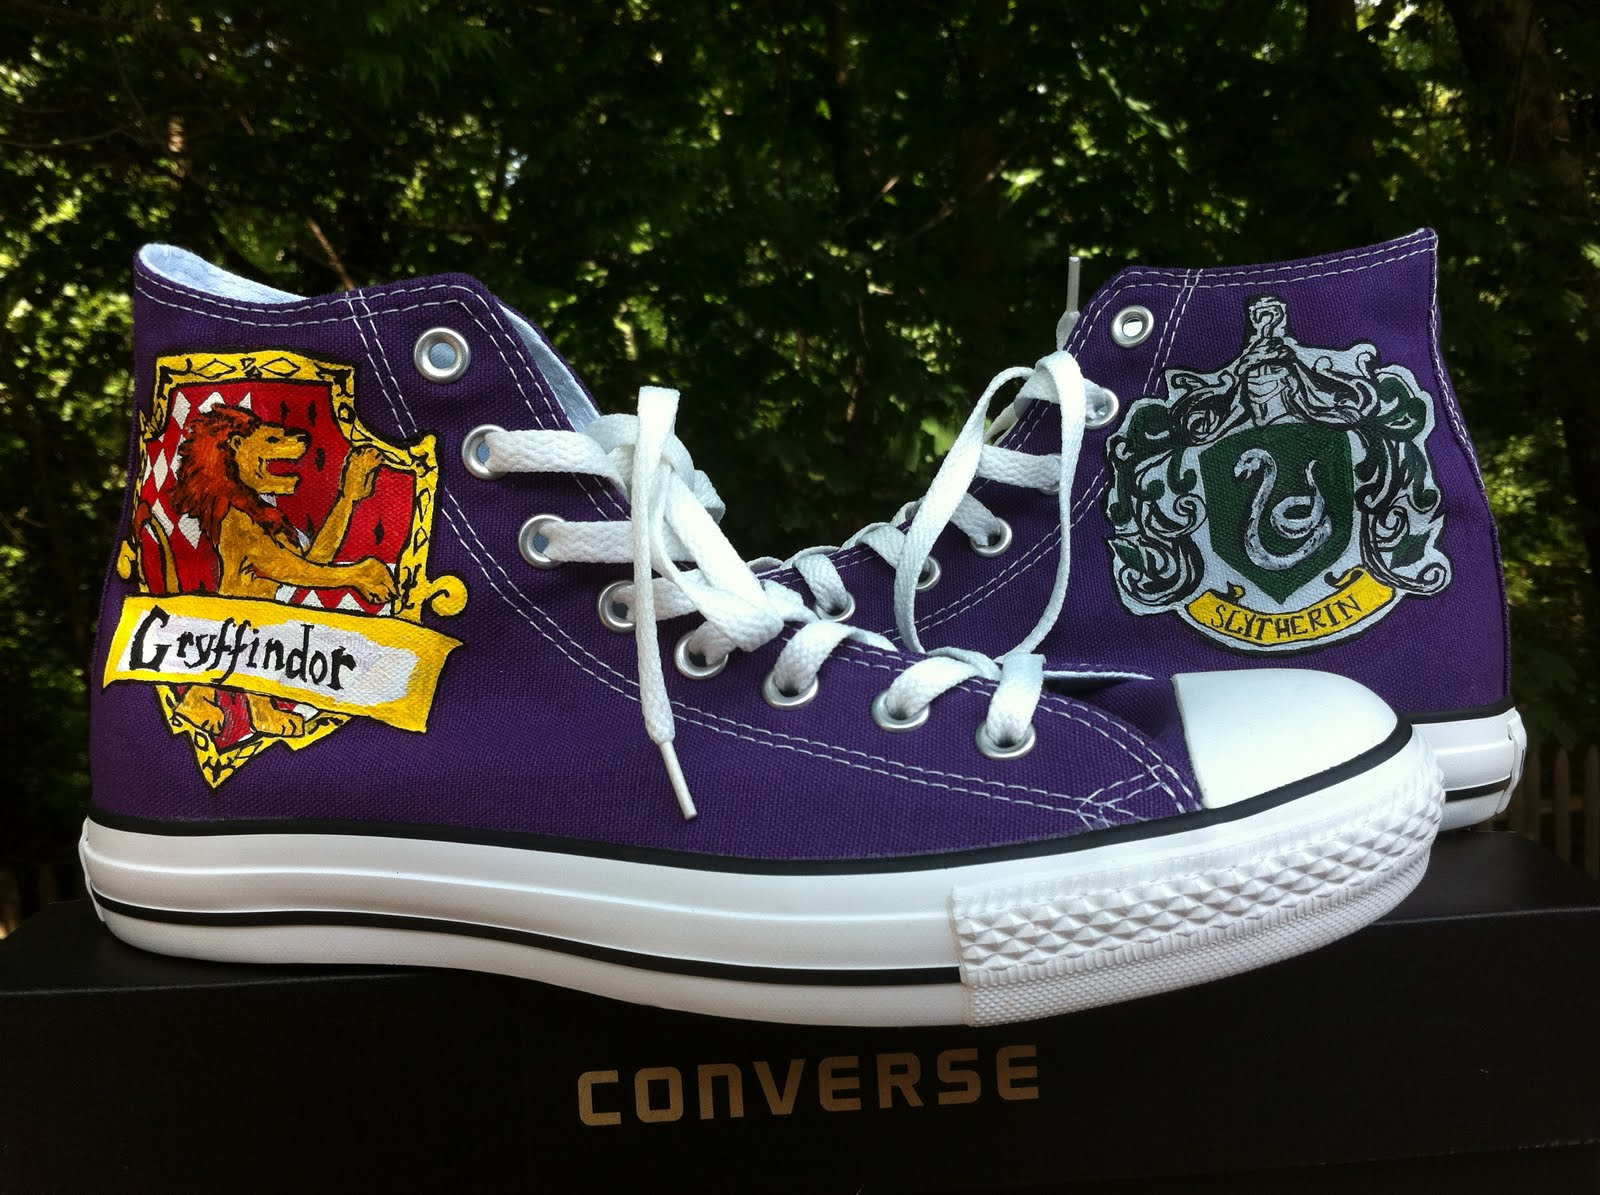 Get Your Kicks On Handpainted Shoes Gryffindor Amp Slytherin